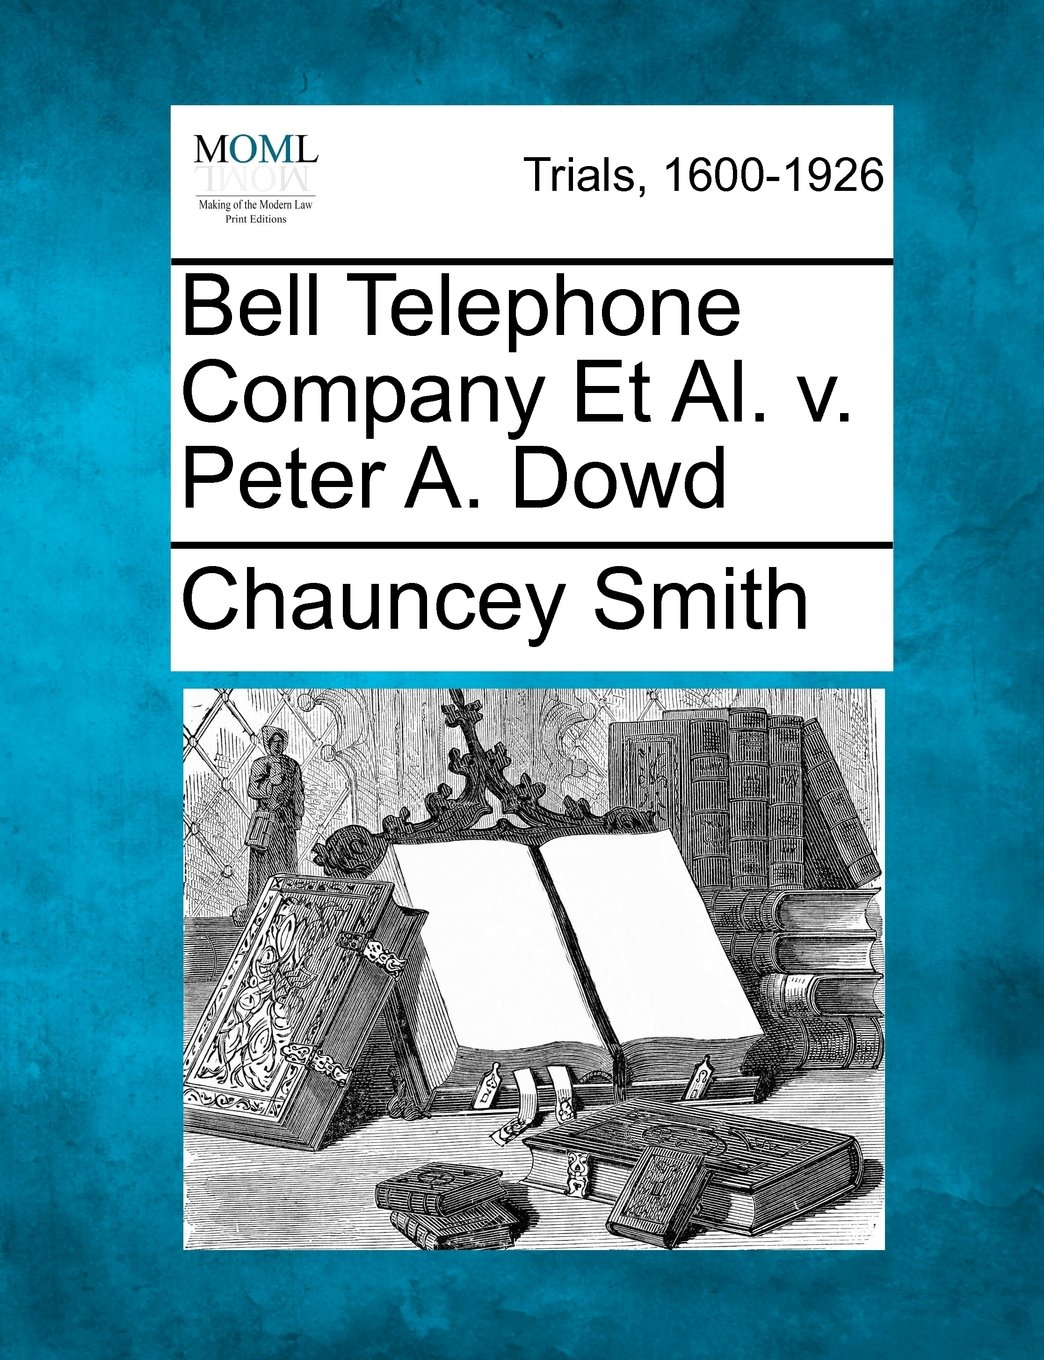 Read Online Bell Telephone Company Et Al. v. Peter A. Dowd PDF